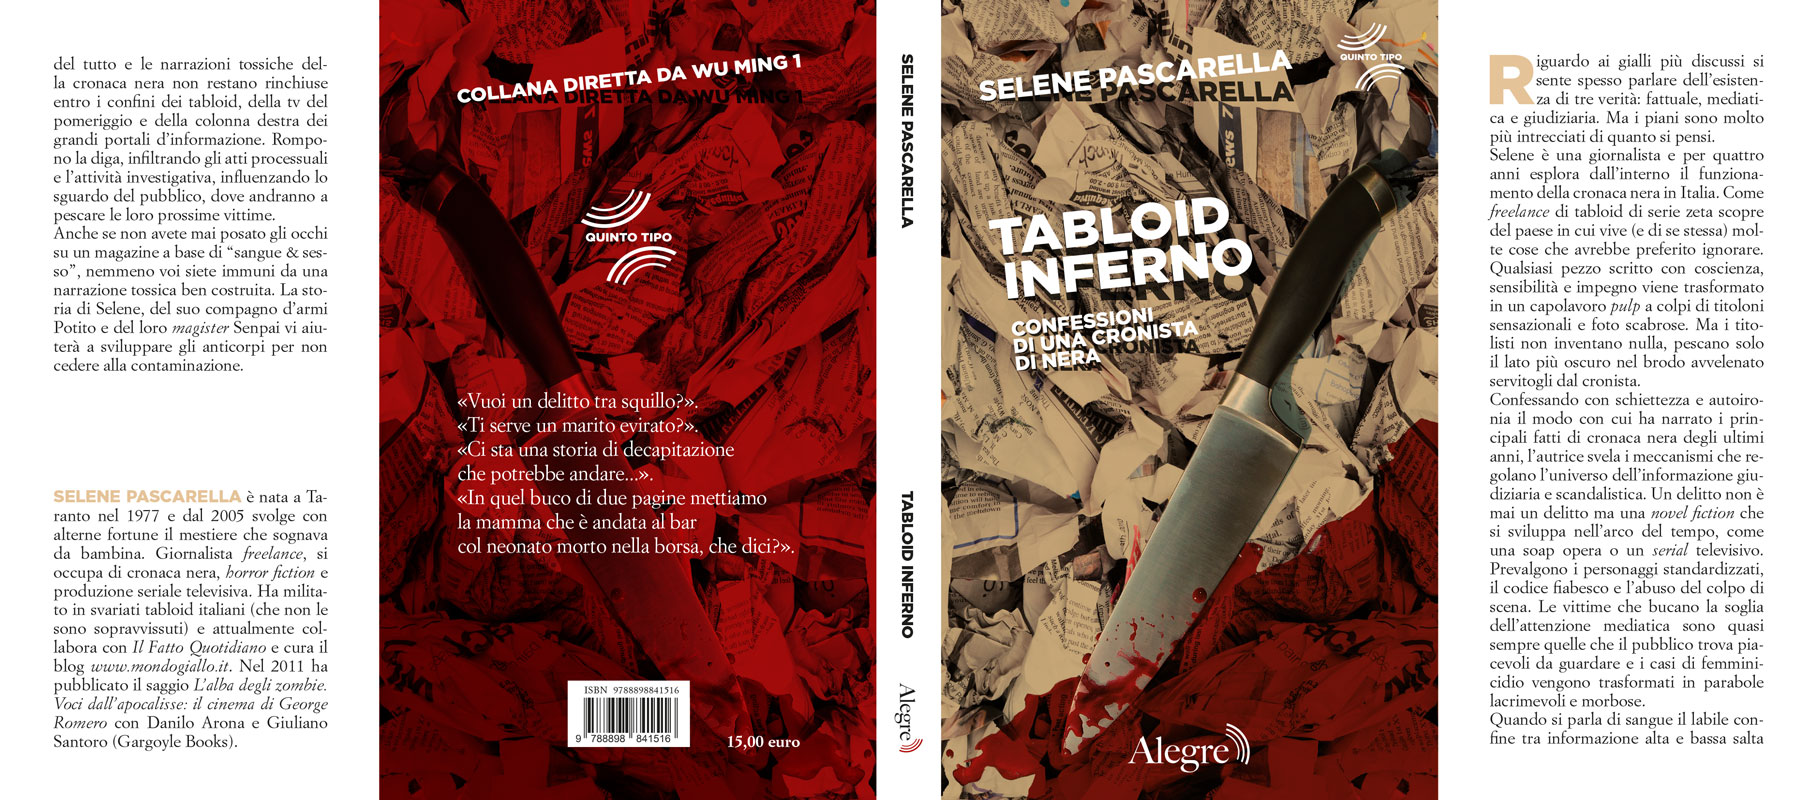 Selene Pascarella, Tabloid inferno, stesa